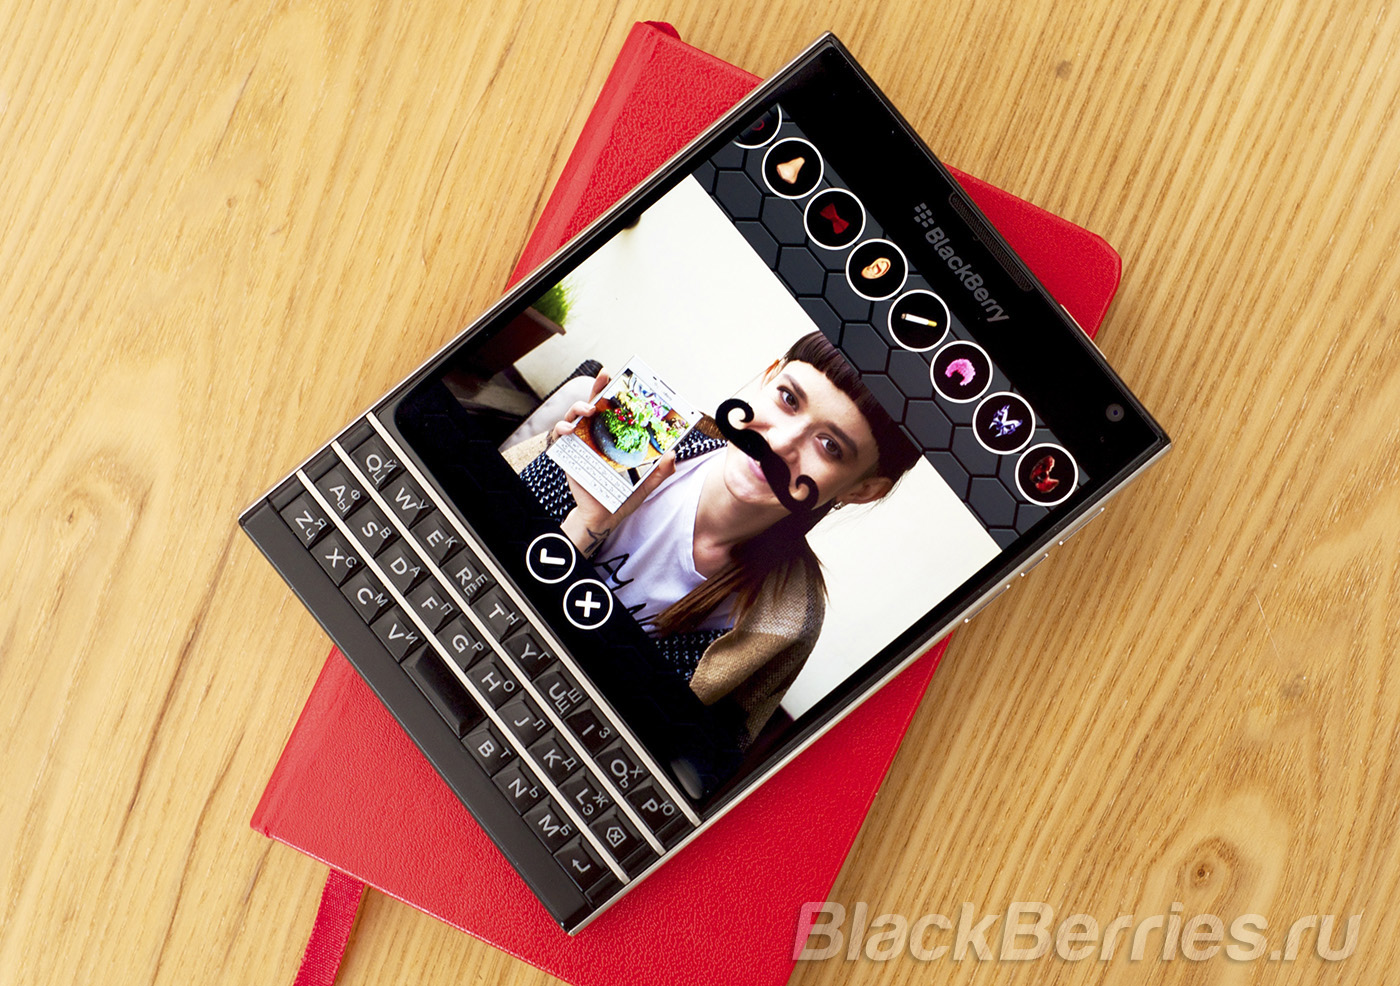 BlackBerry-Apps-28-06-5